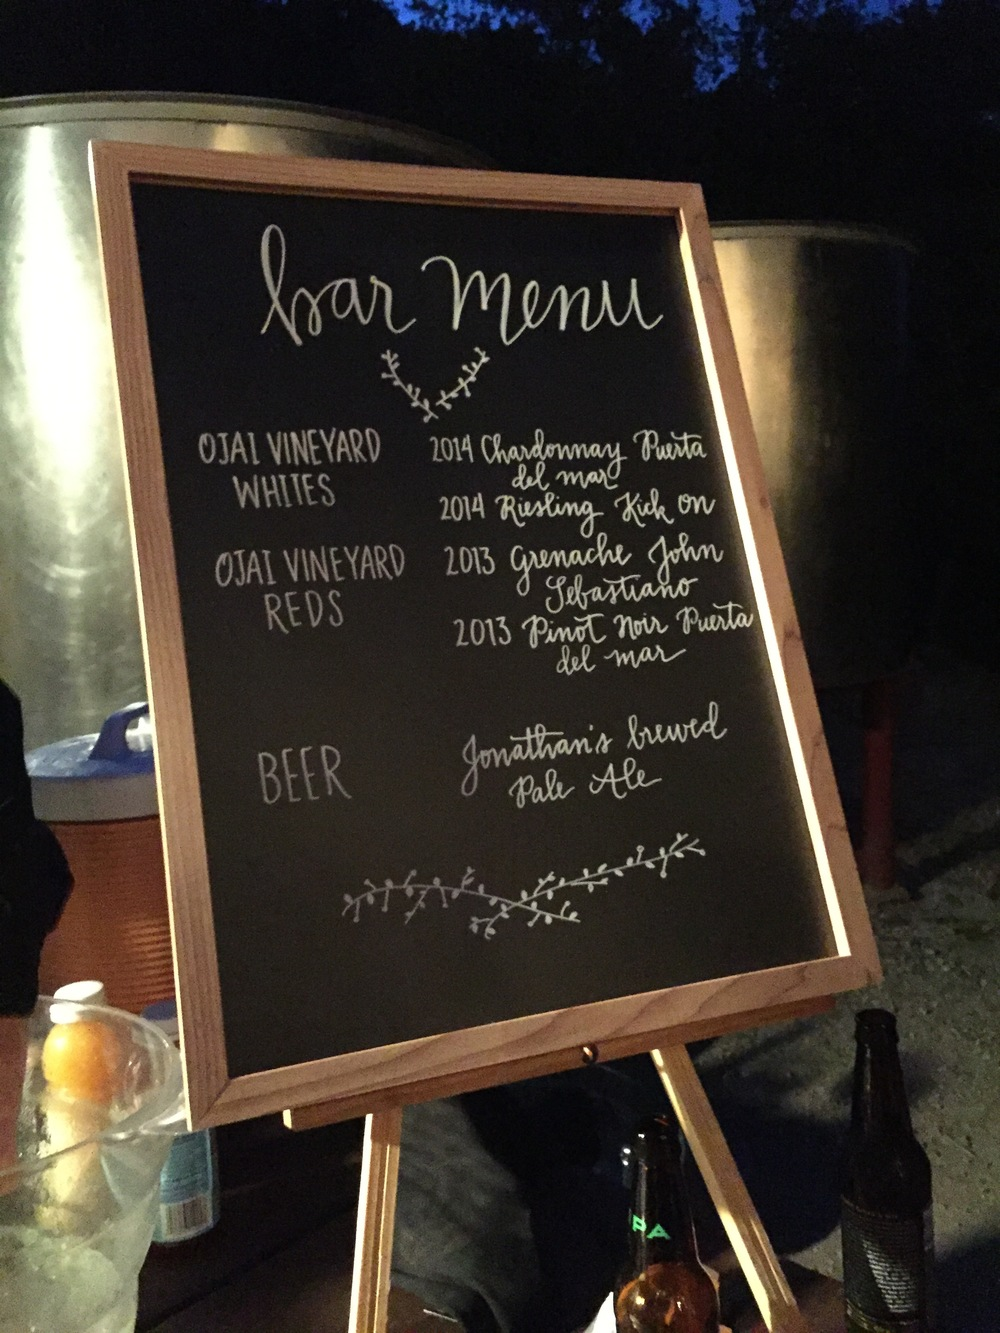 Bar menu on chalkboard.  All the wine was supplied on sight from the Ojai Vineyard, their family vineyard. The beer was brewed by another cousin who lives down the street.